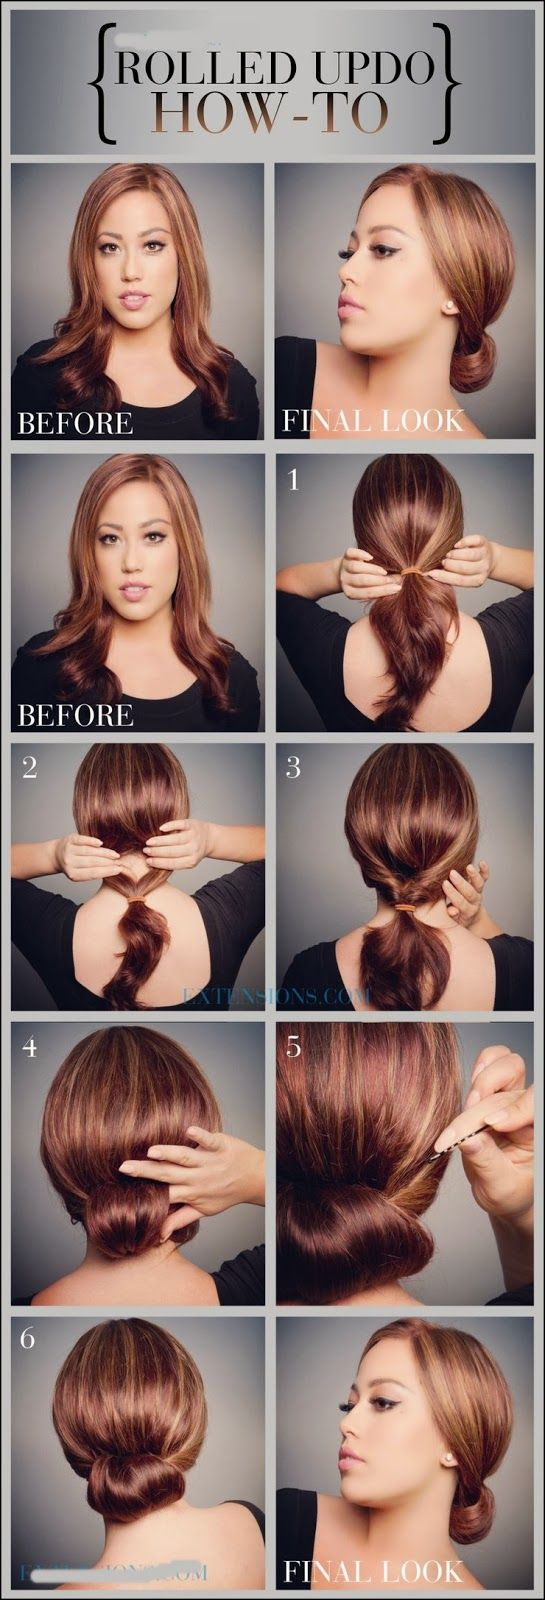 Check out this super easy simple curly updo hairstyle tutorial to